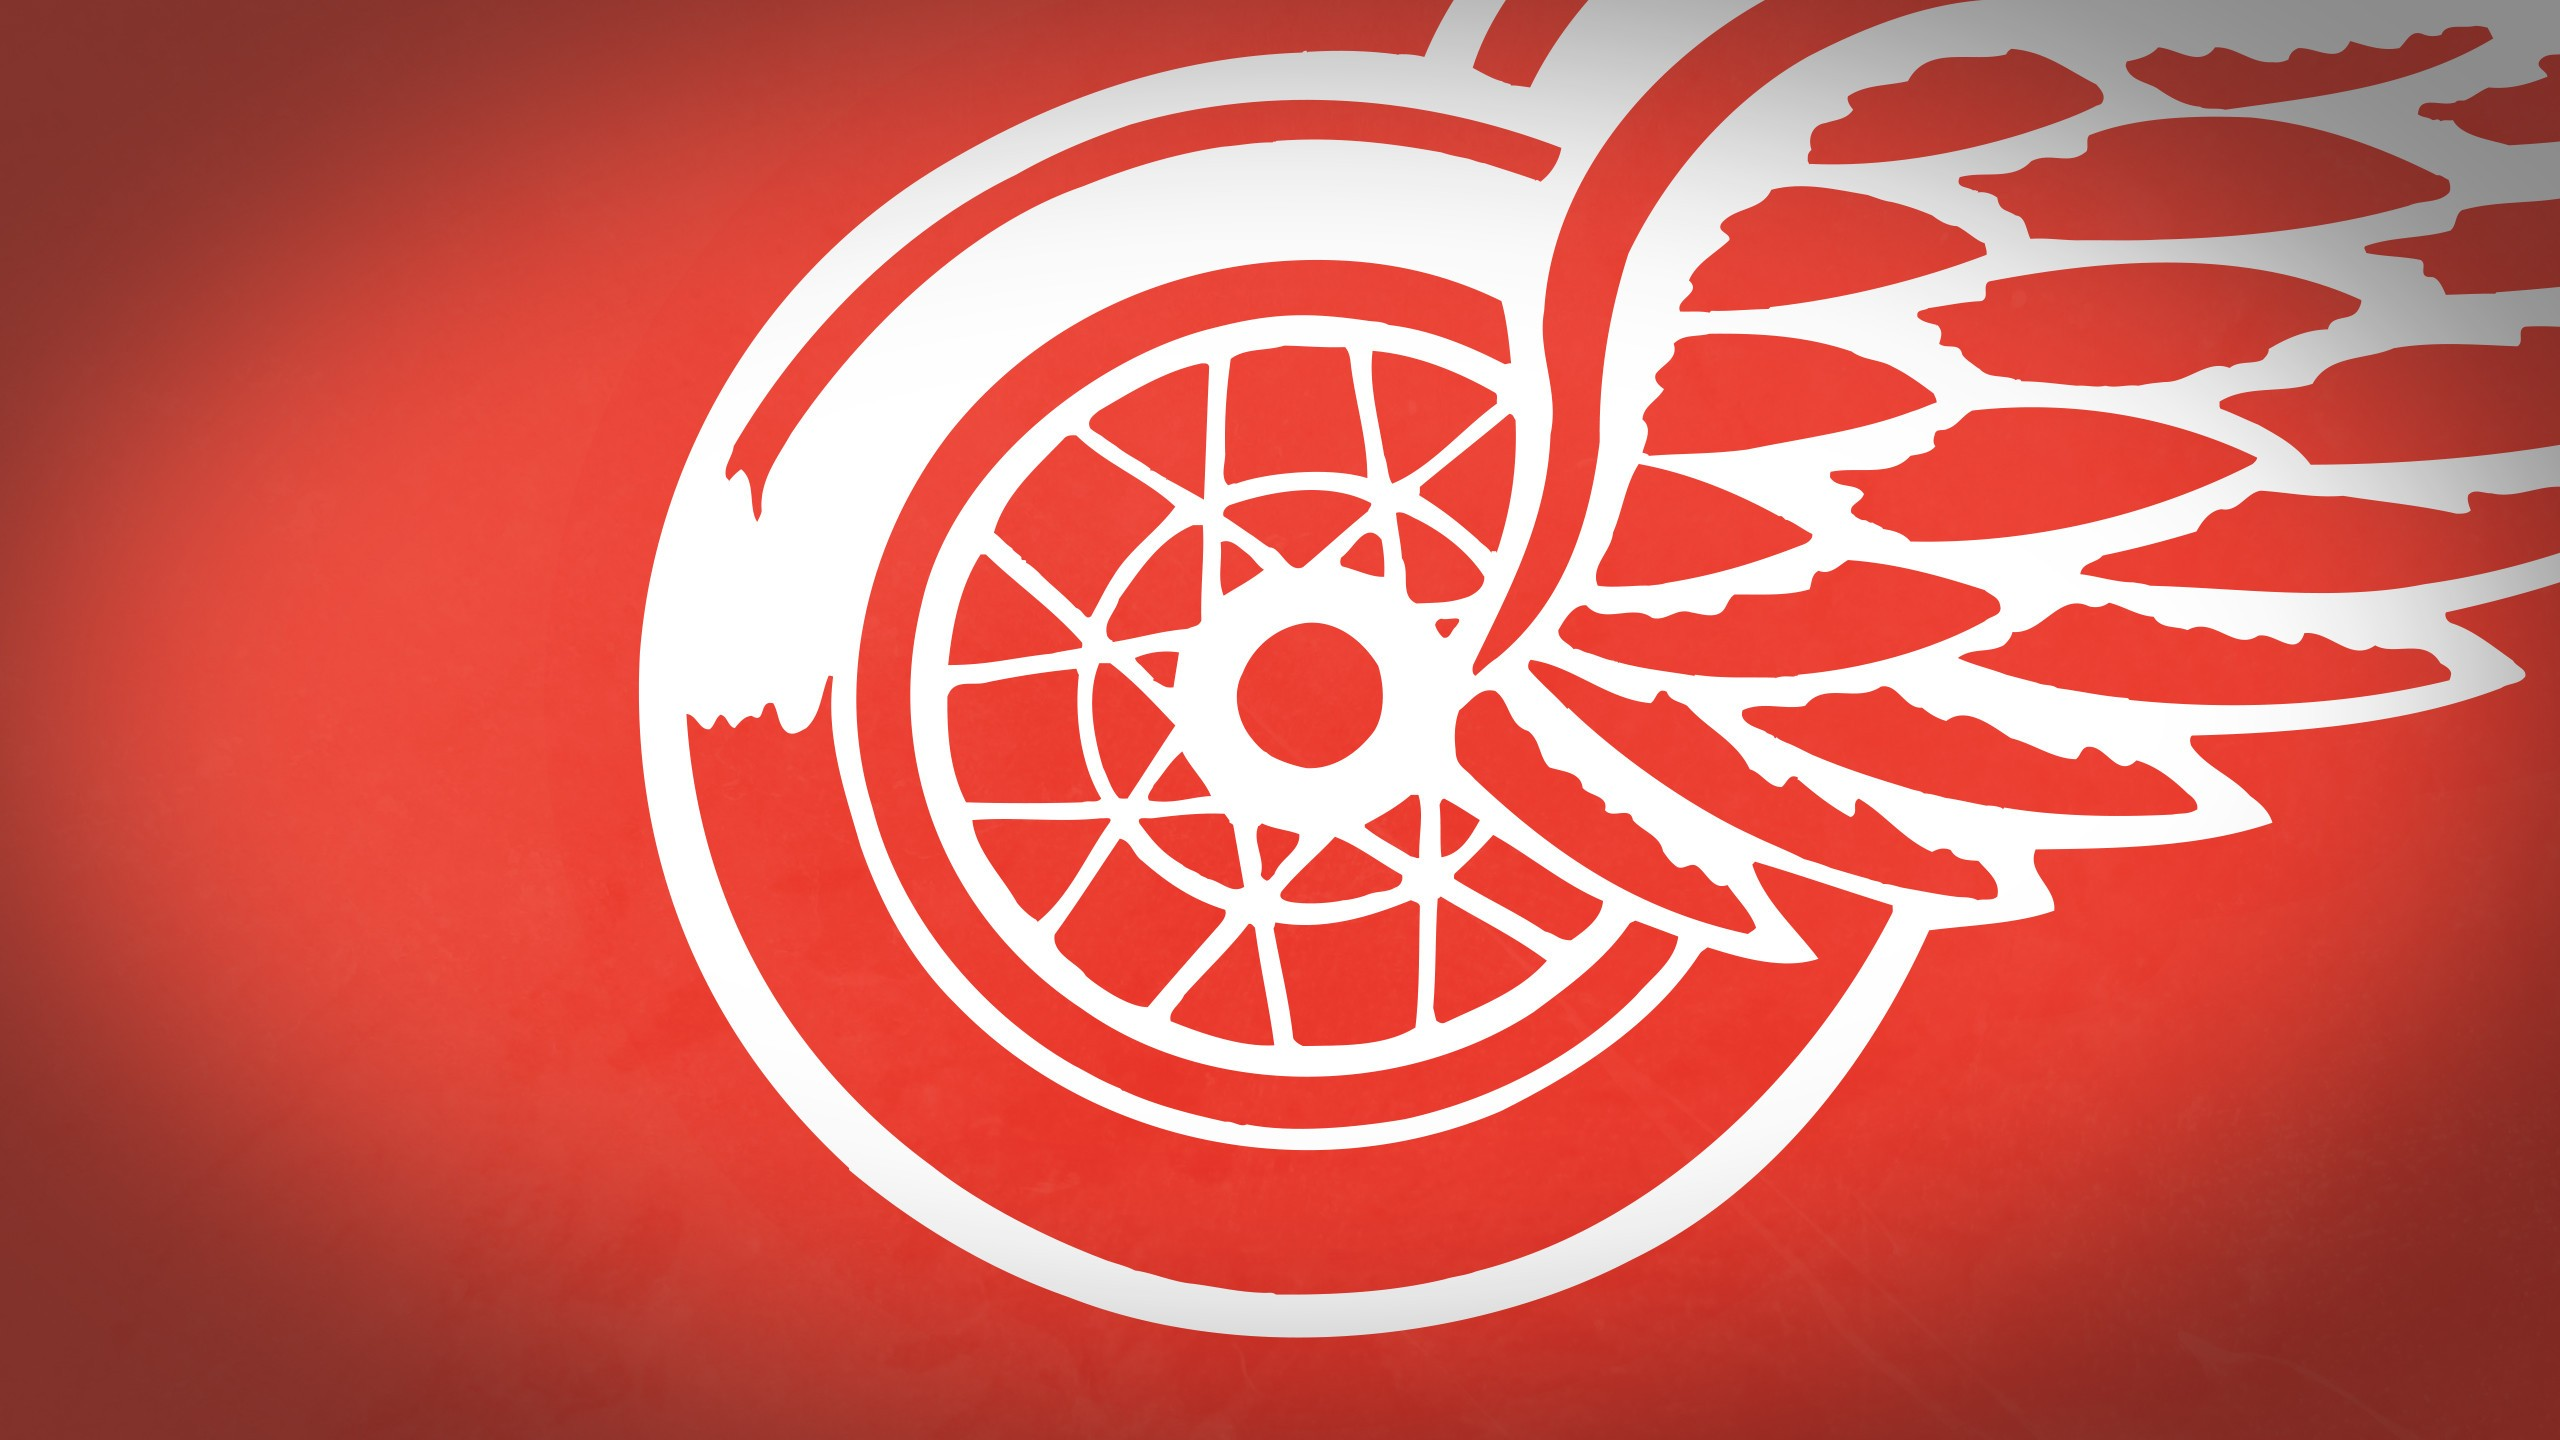 Detroit Red Wings Full HD Wallpaper And Background Image